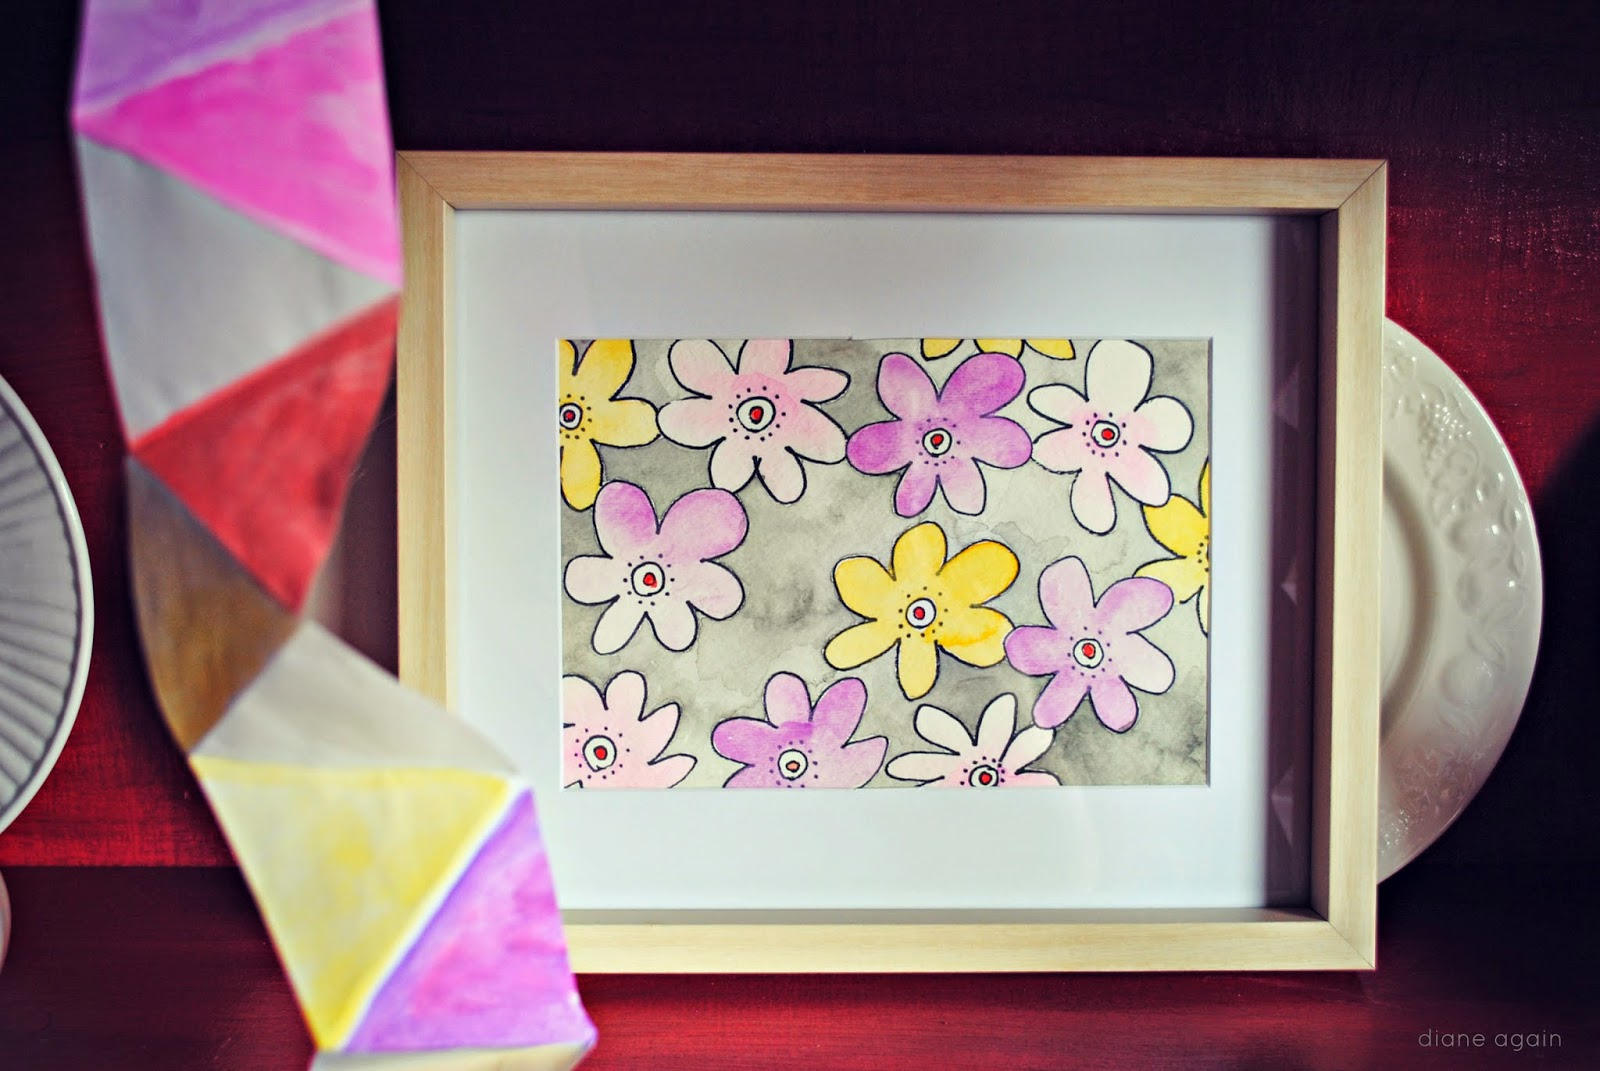 Diane Again Draw This Spring Flowers